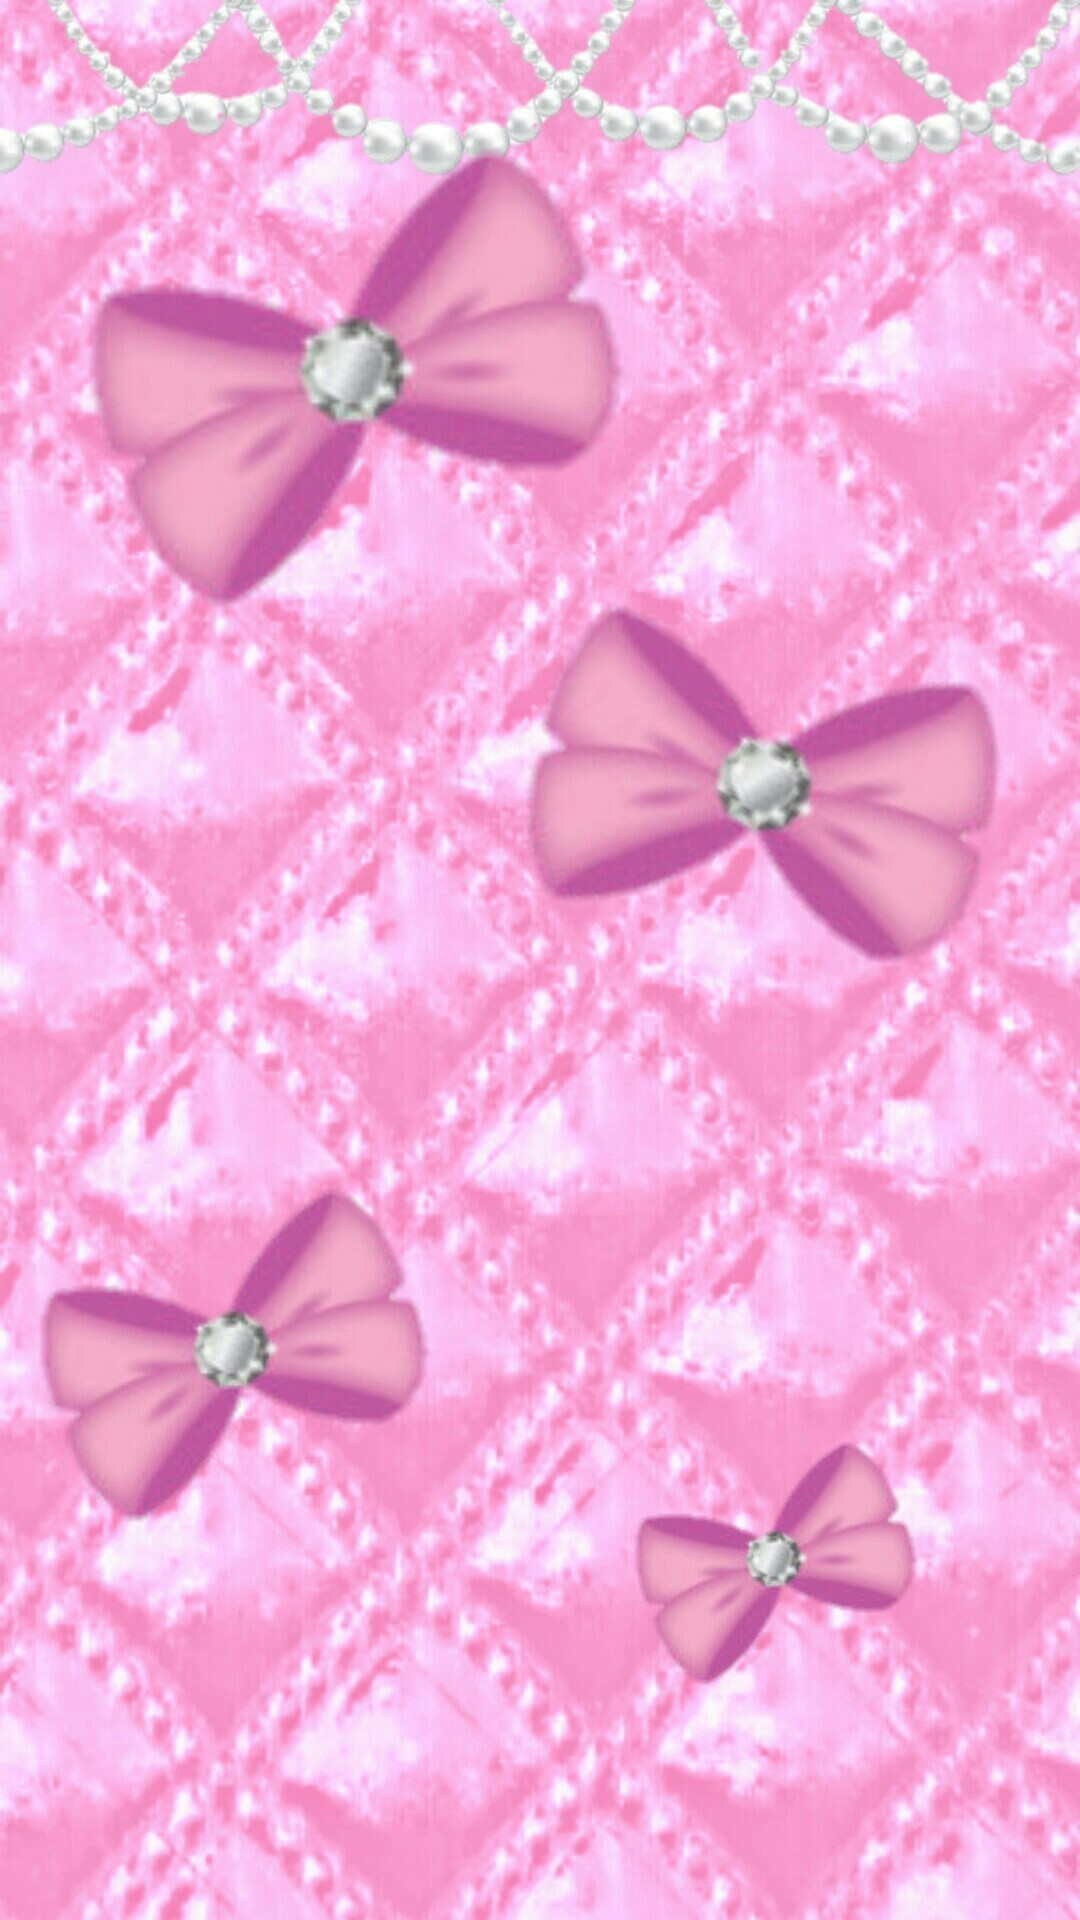 Res: 1080x1920, Pink Diamond Wallpaper Awesome Pink Bows Upholstry and Pearls Wallpaper  Background iPhone